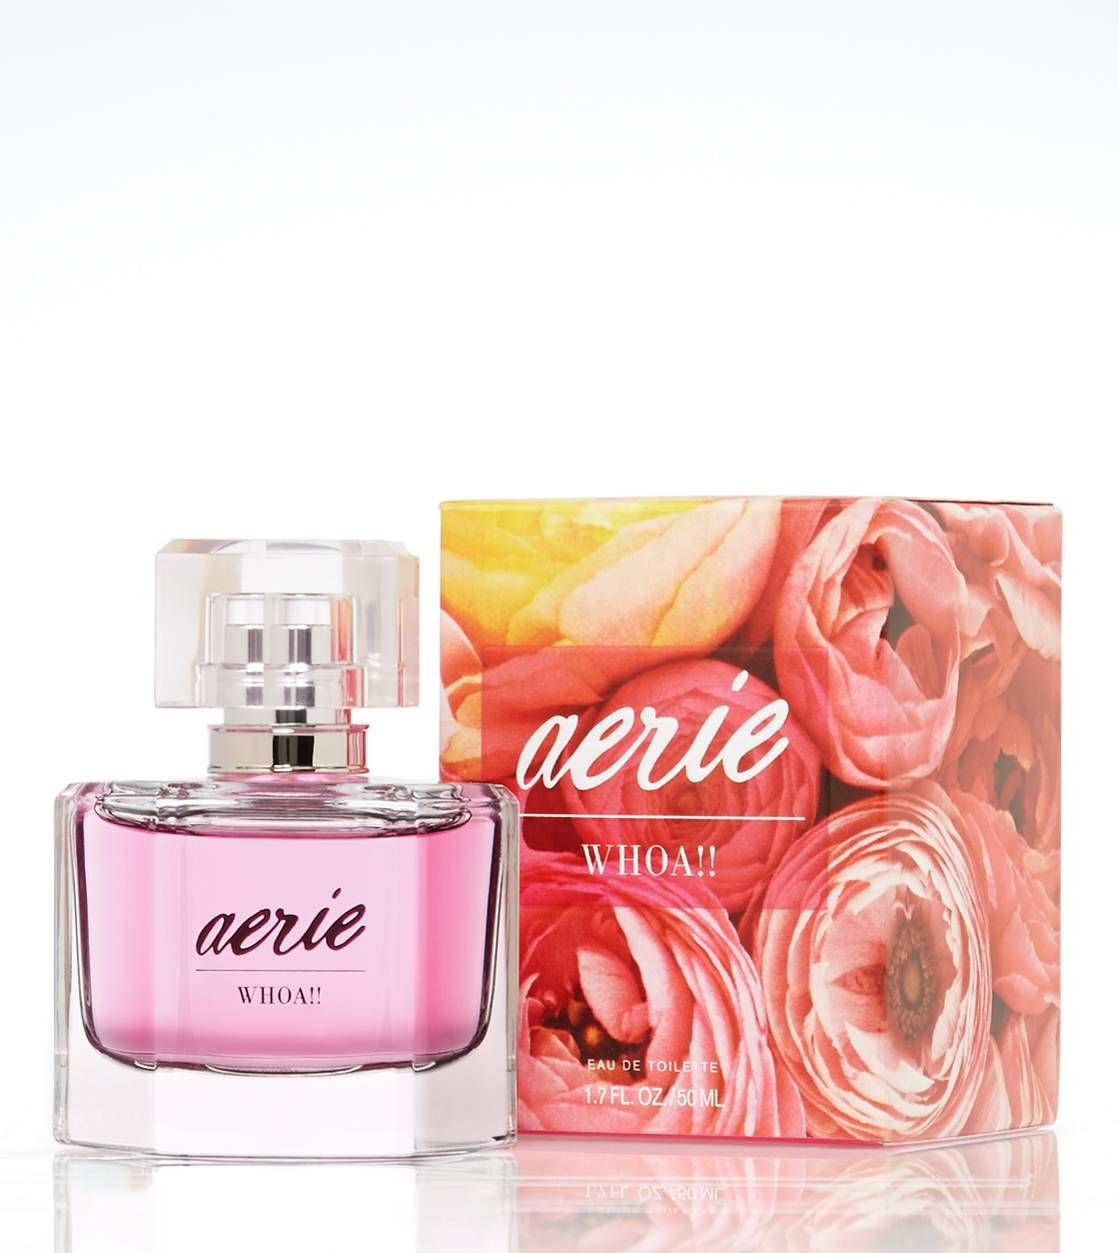 Aerie by American Eagle Whoa!! EDT